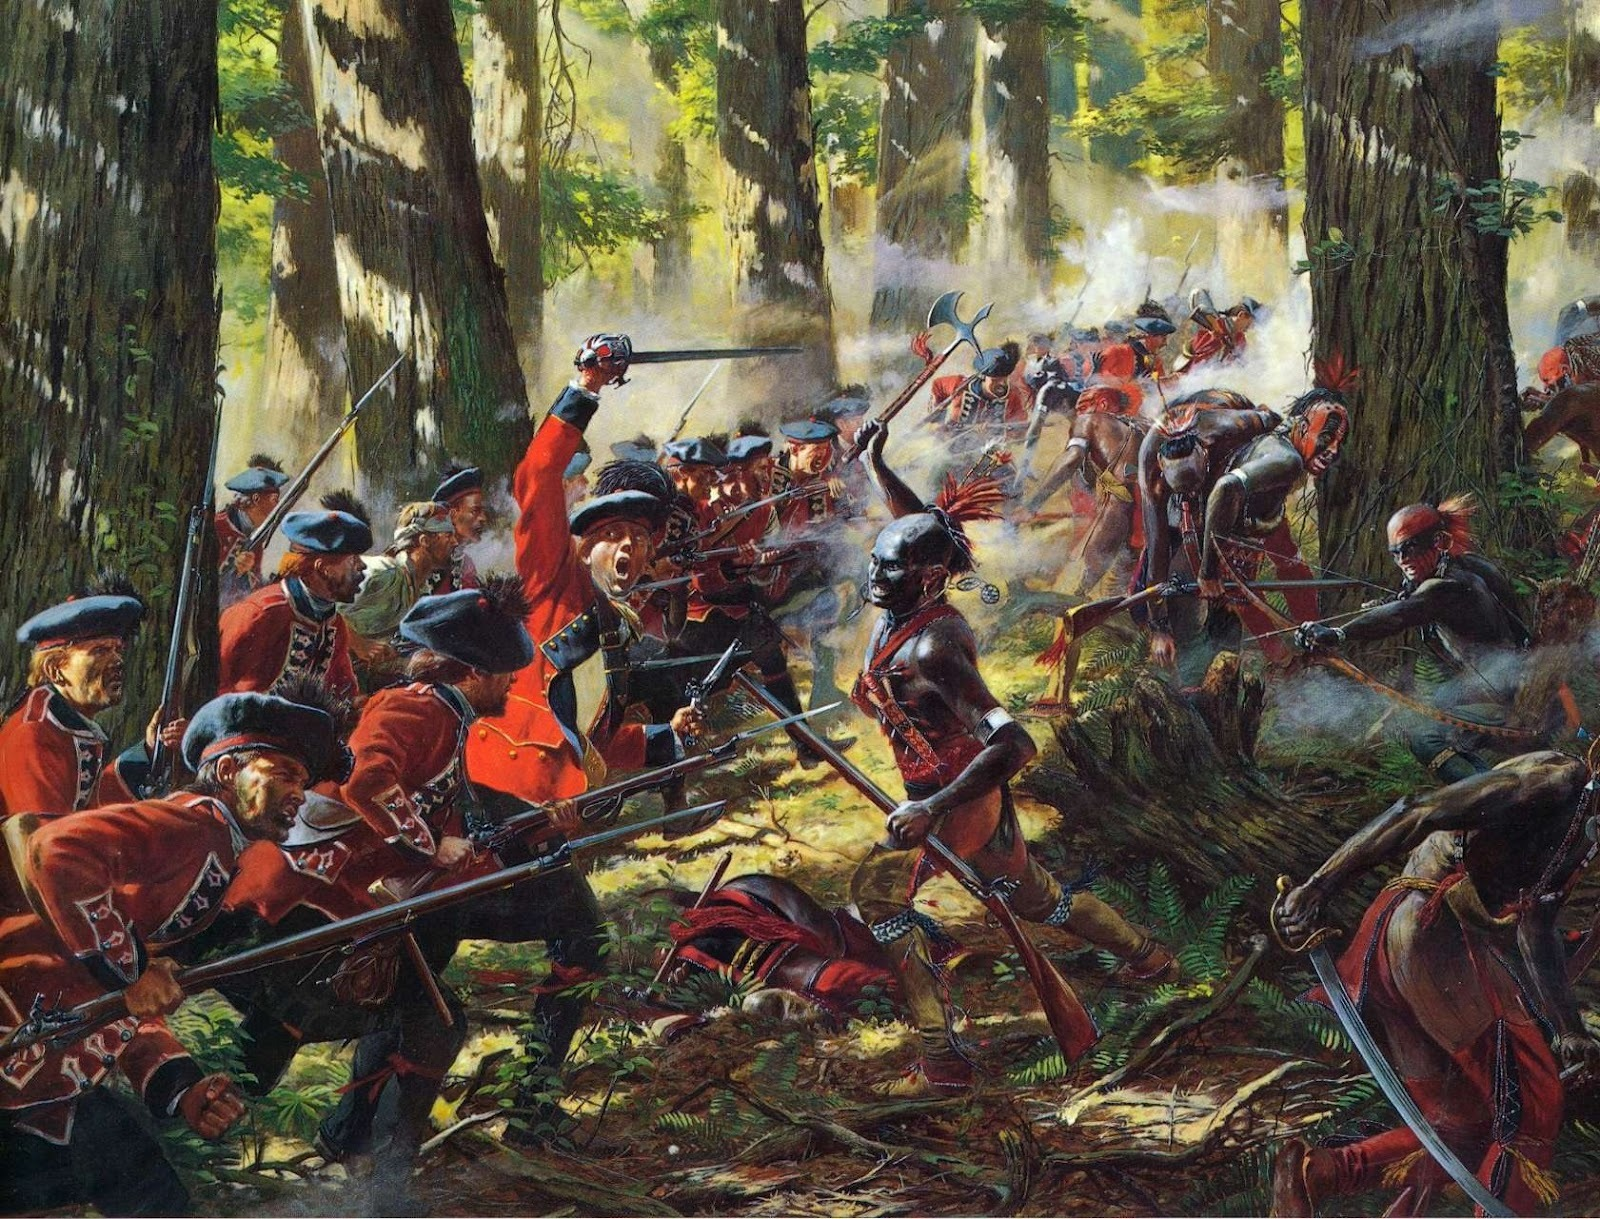 the battle of the bunker hill as the most important colonial victories in the us war for independenc